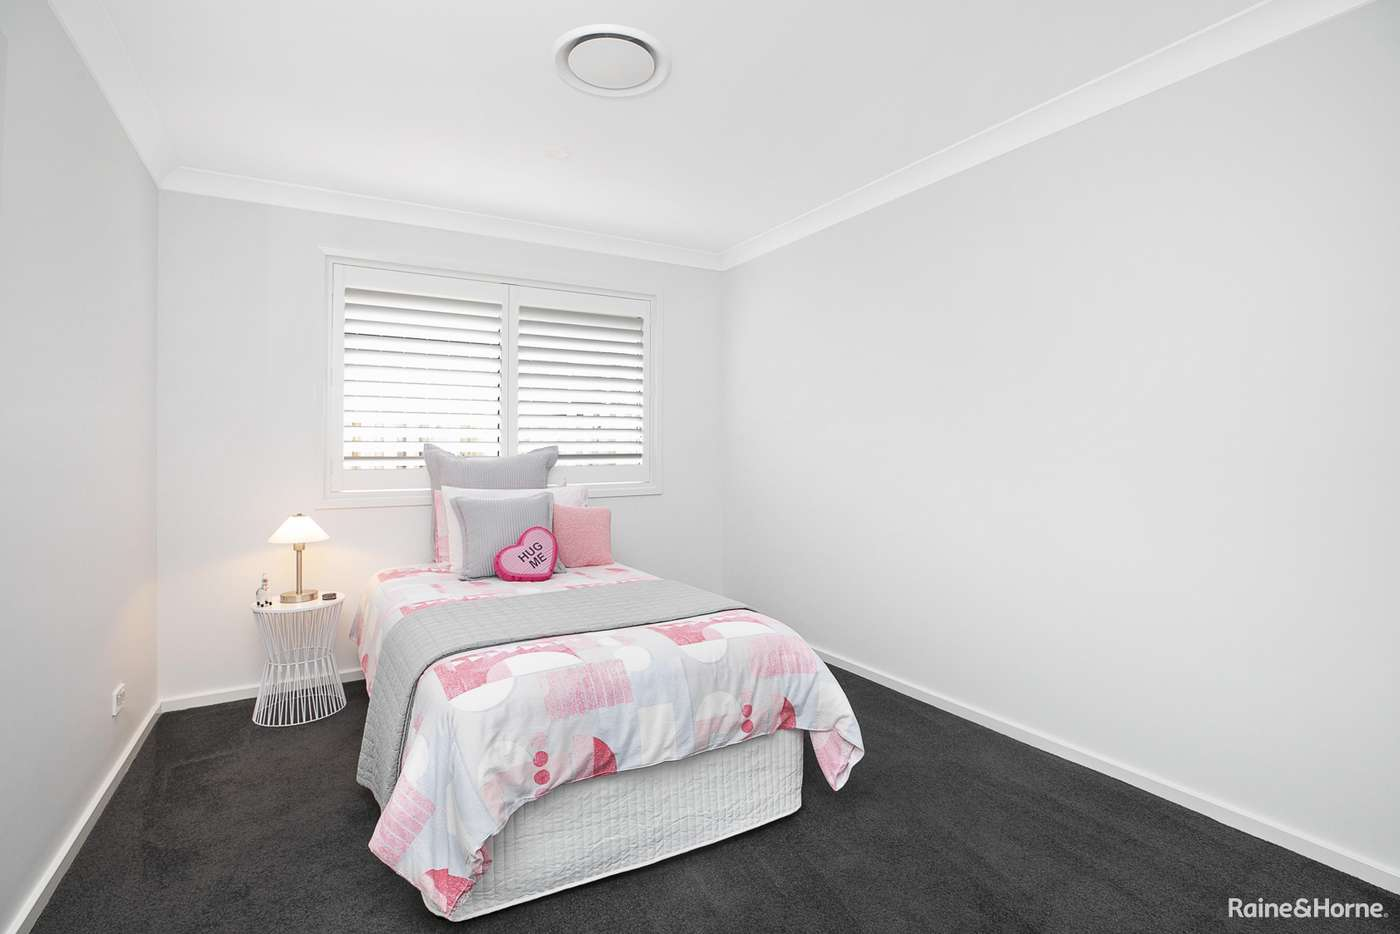 Seventh view of Homely house listing, 8 Bold Street, Renwick NSW 2575